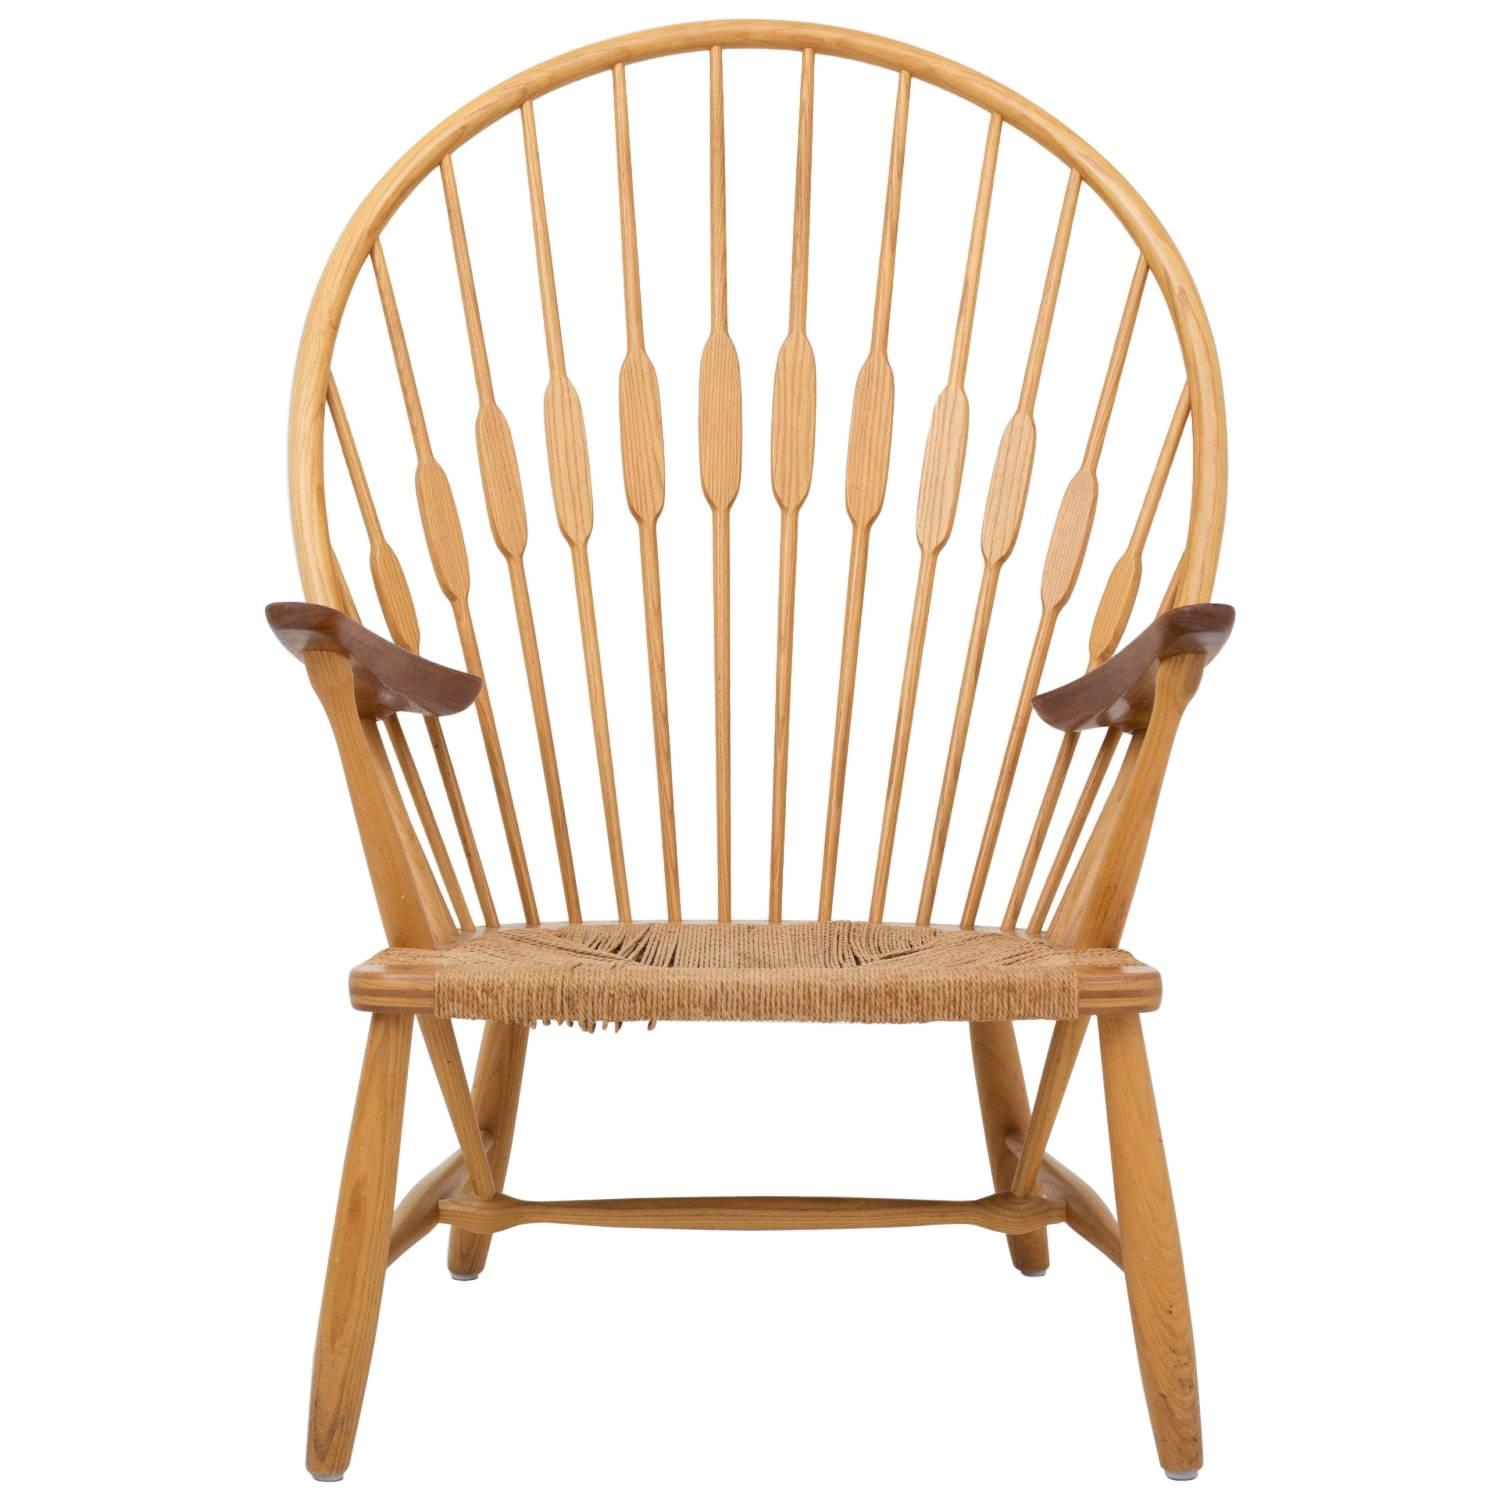 Hans J. Wegner JH 550 Peacock Chair 1